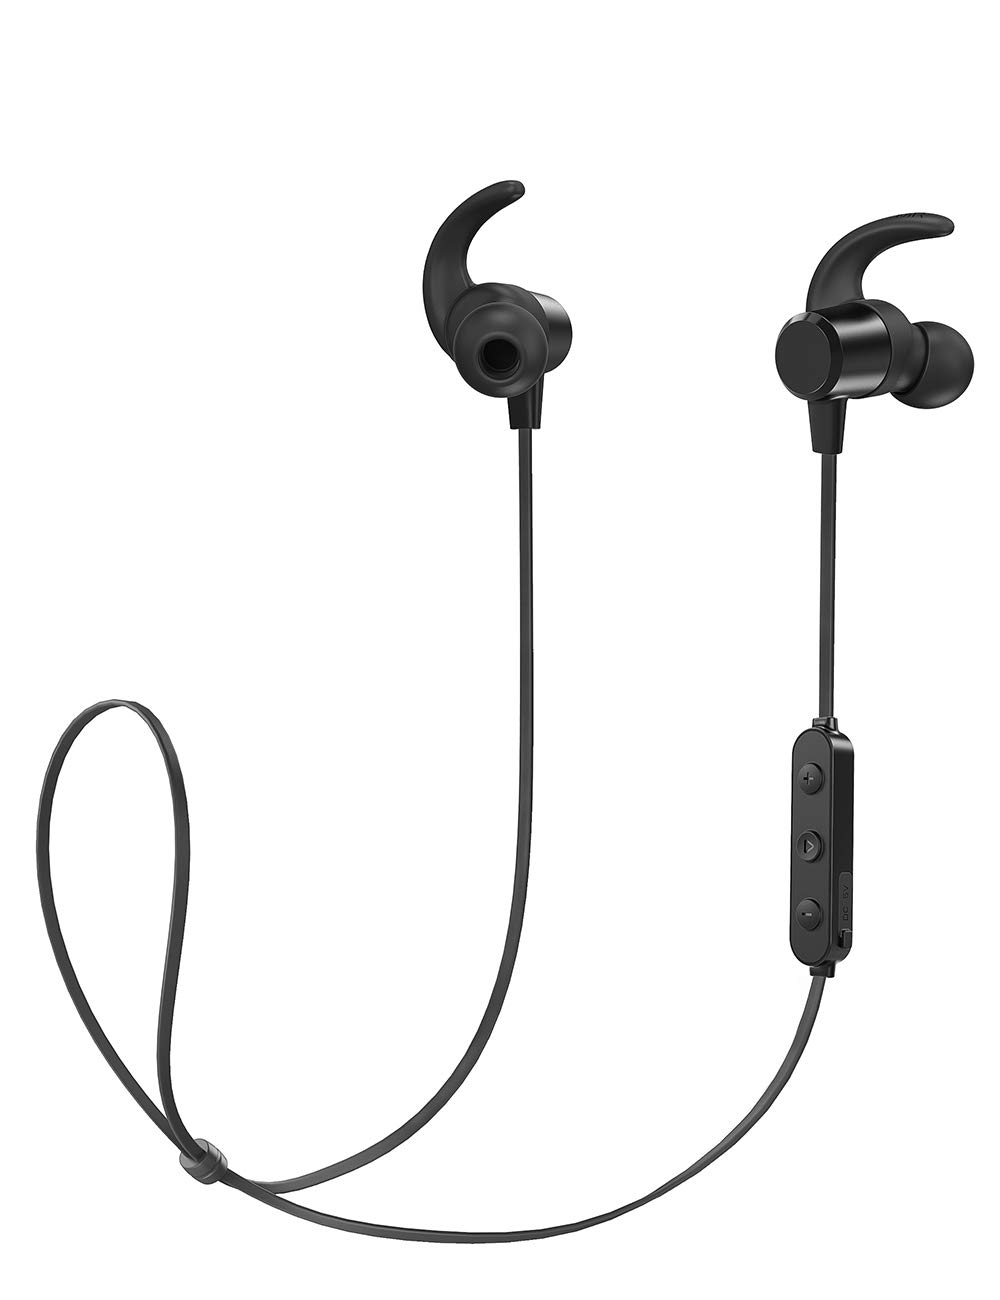 Wireless Bluetooth 5.0 Earphones [2019 Upgrade], BesDio Workout Headphones : aptX Stereo Magnetic Earbuds Snug Fit, for Sports, Gym, Jogging (CVC 6.0 Noise Cancelling Mic, IPX6, 20 Hours Play time)